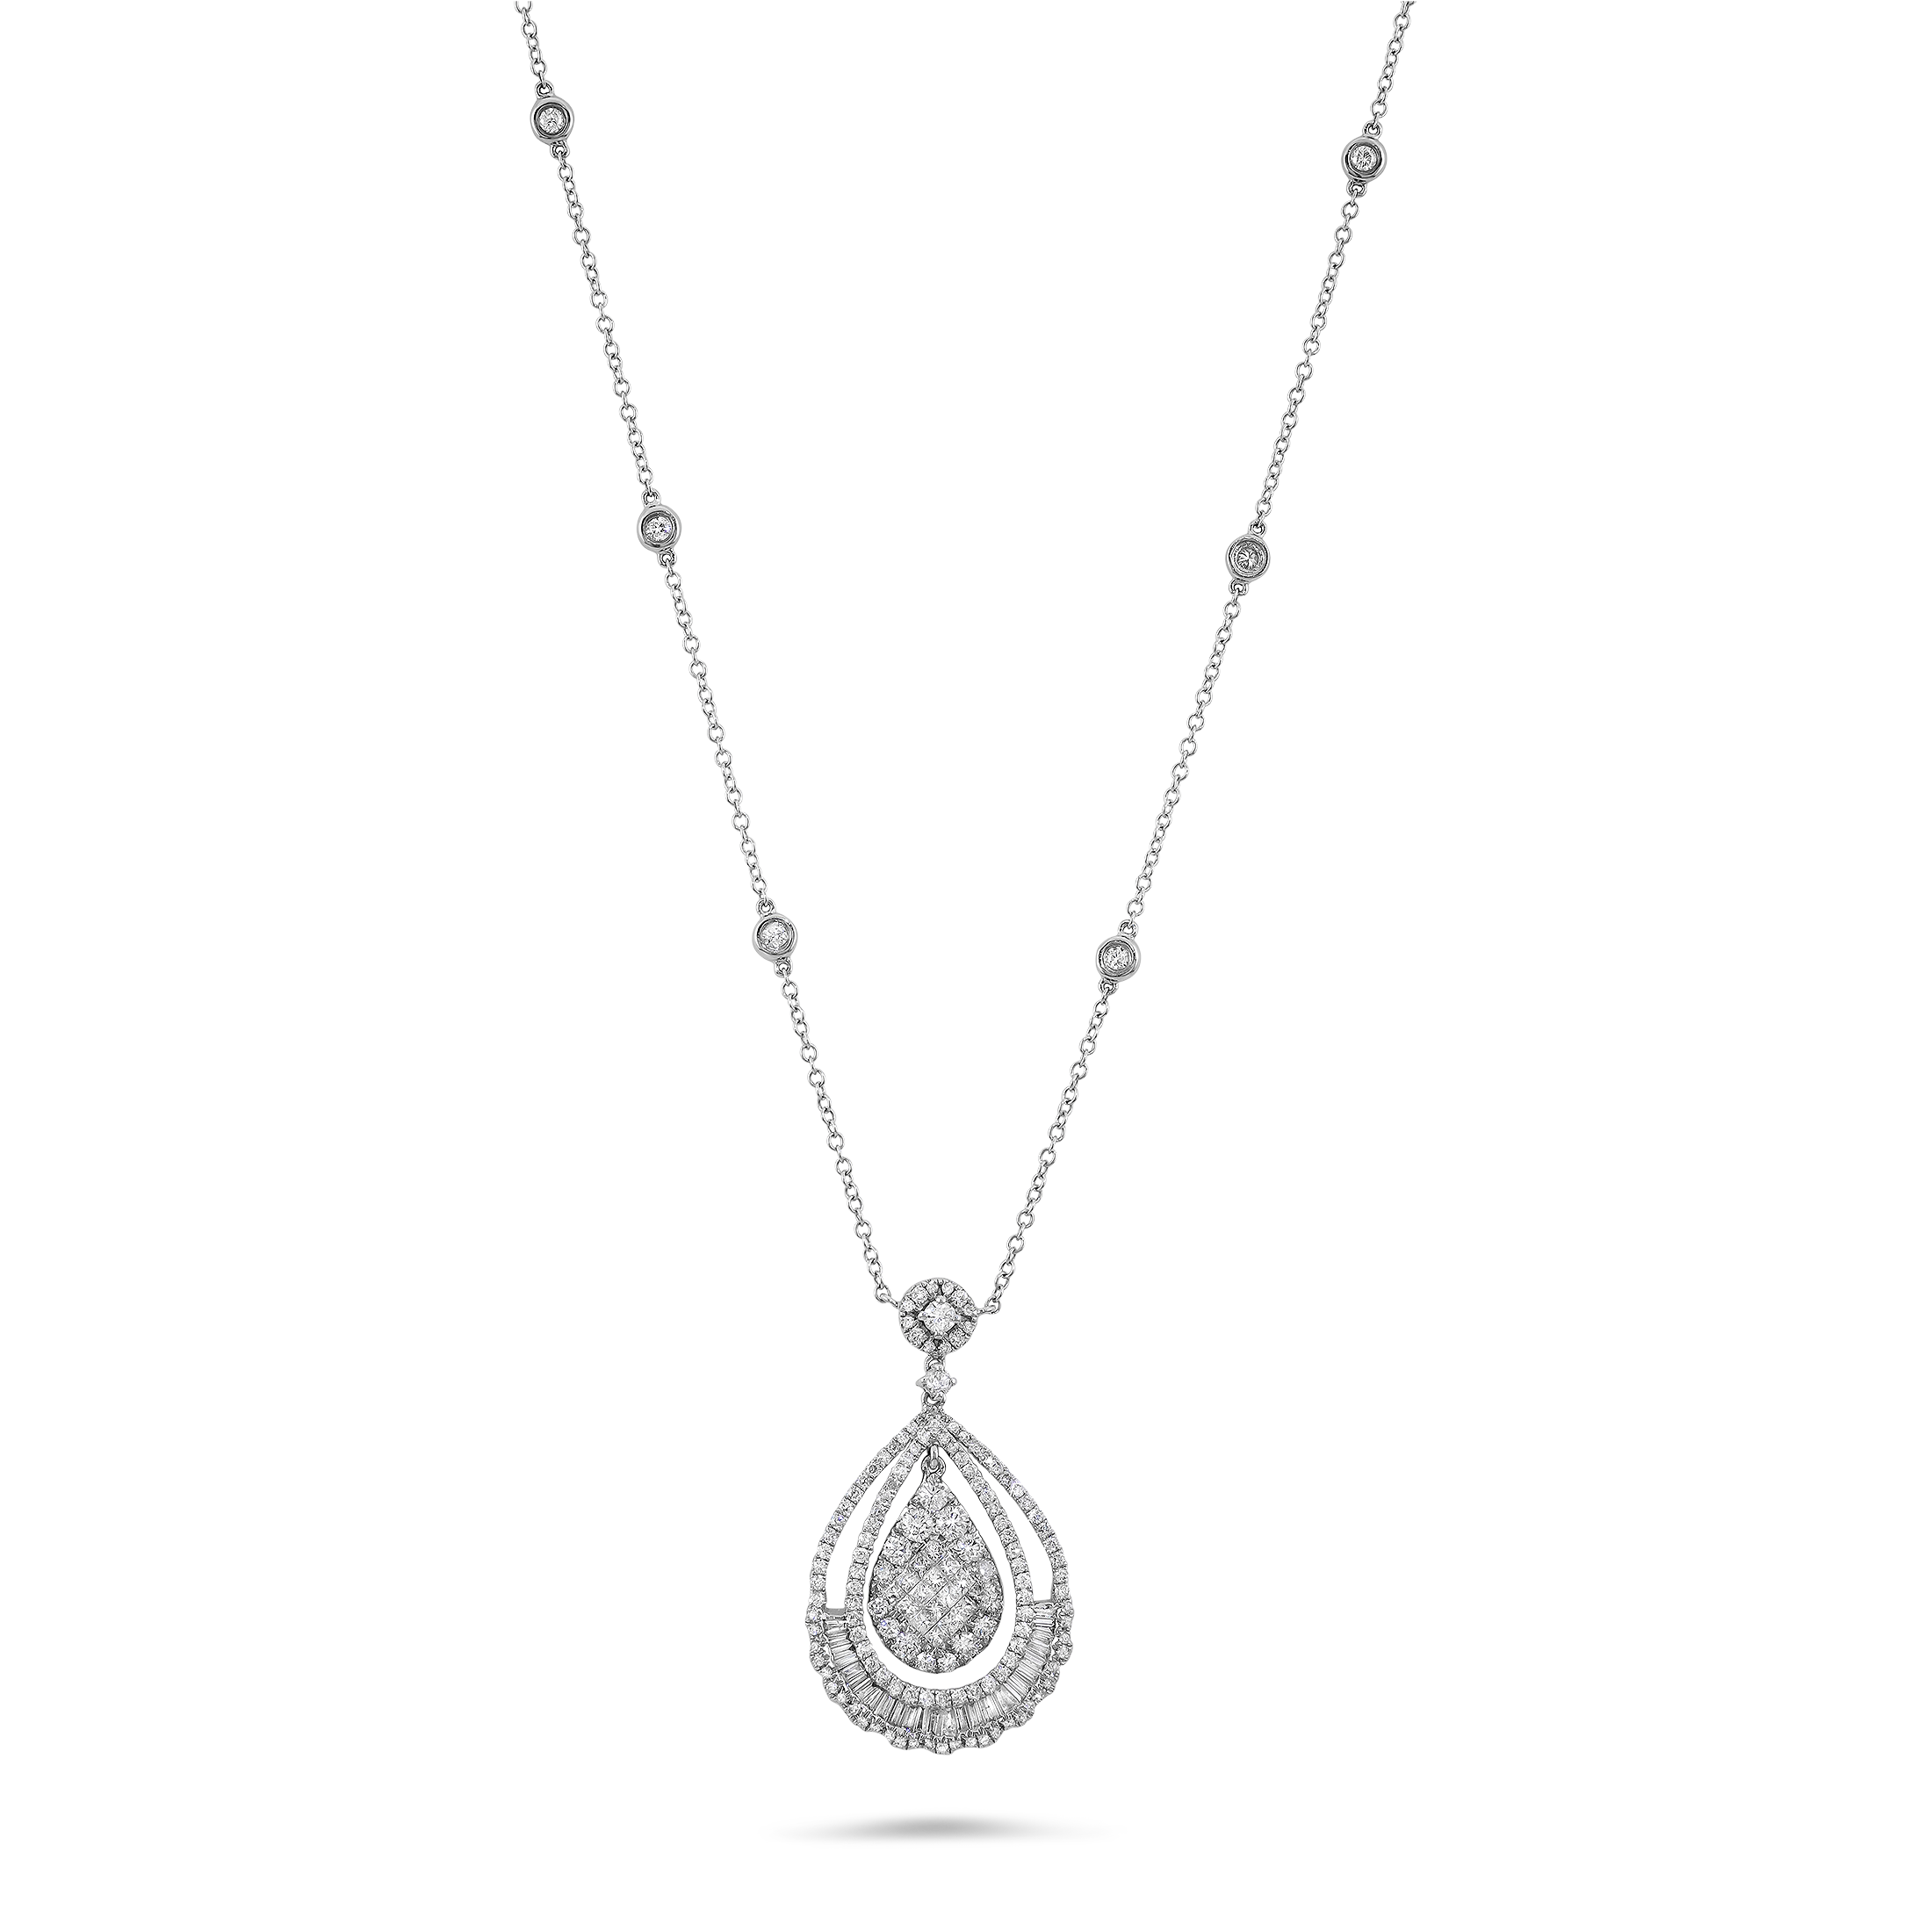 Necklace PNG Images Transparent Free Download.